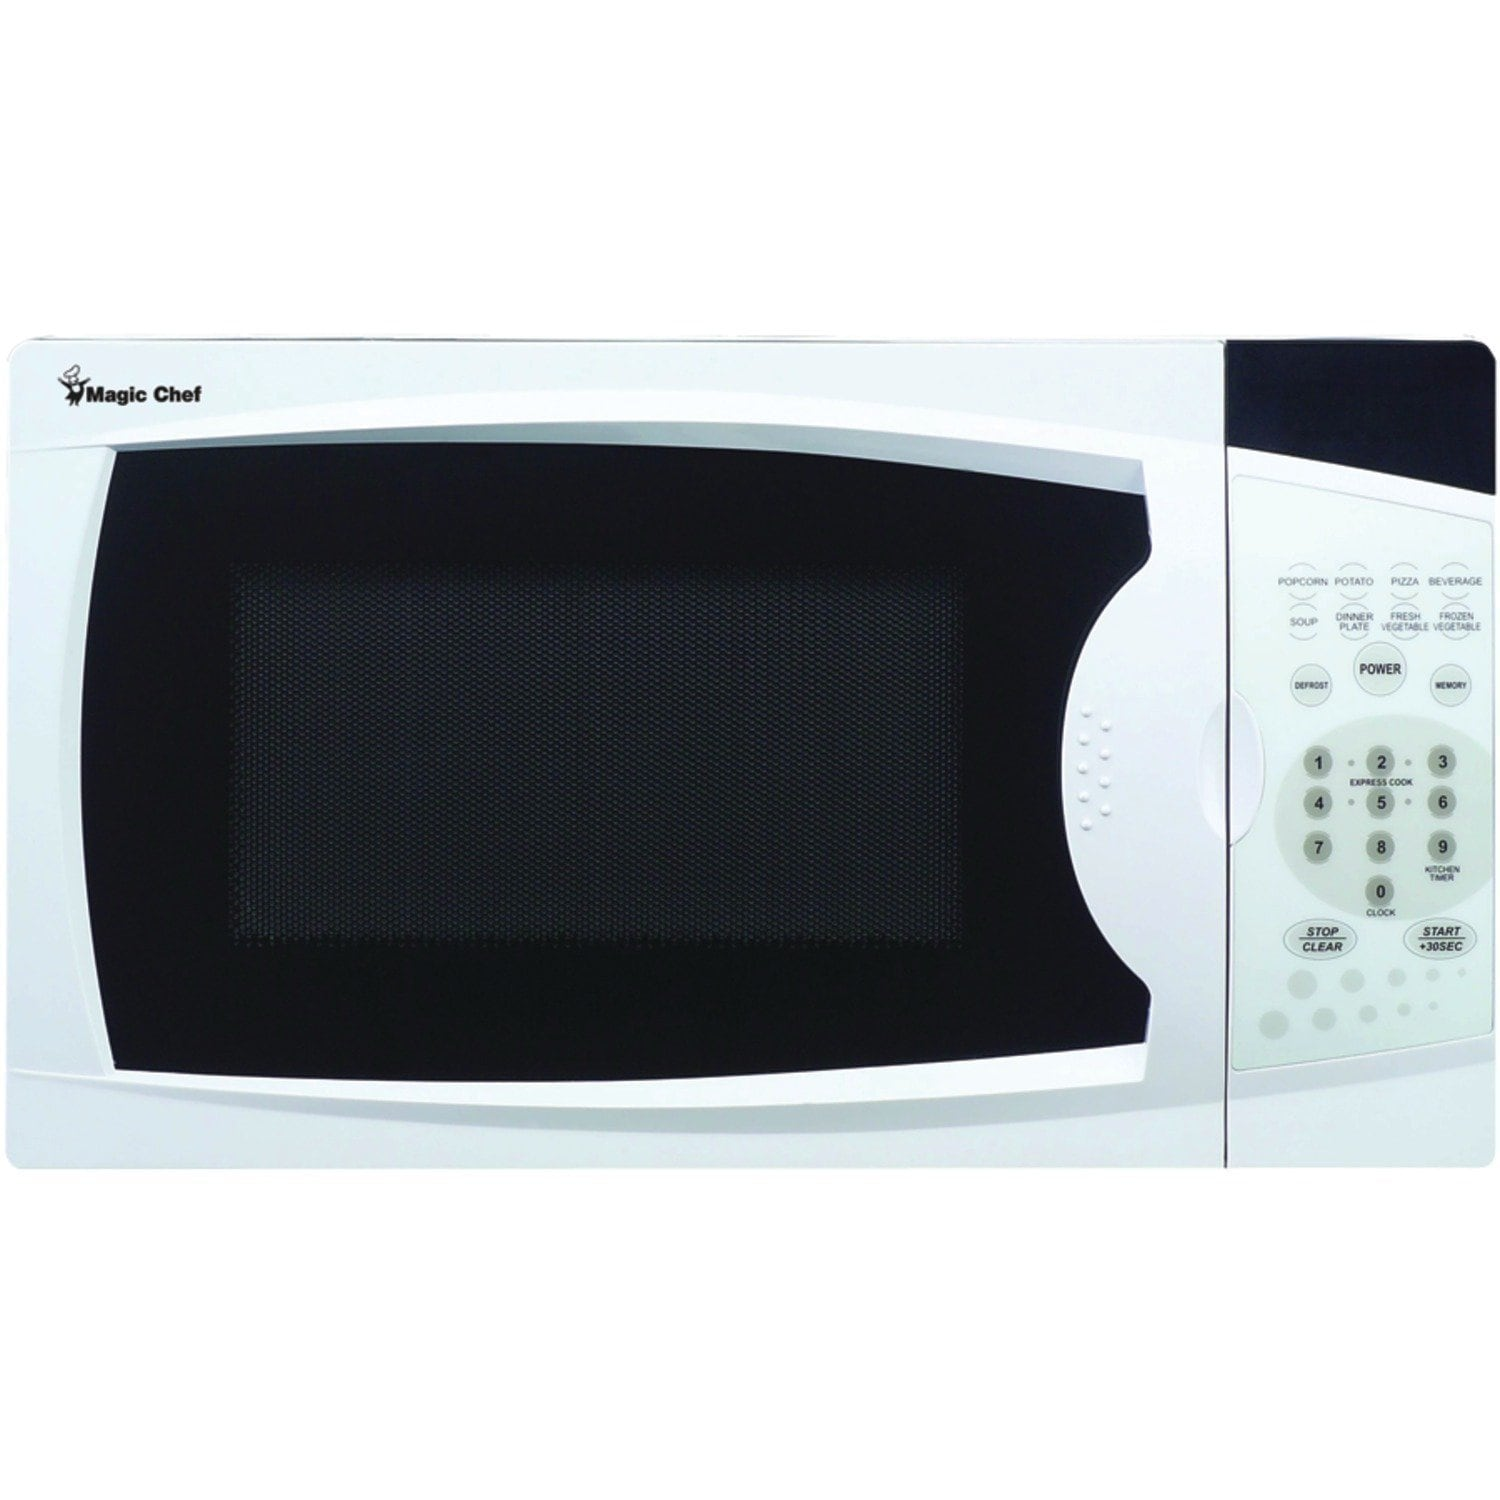 Magic Chef 0.7 Microwave Oven, White, Size Compact (Glass)